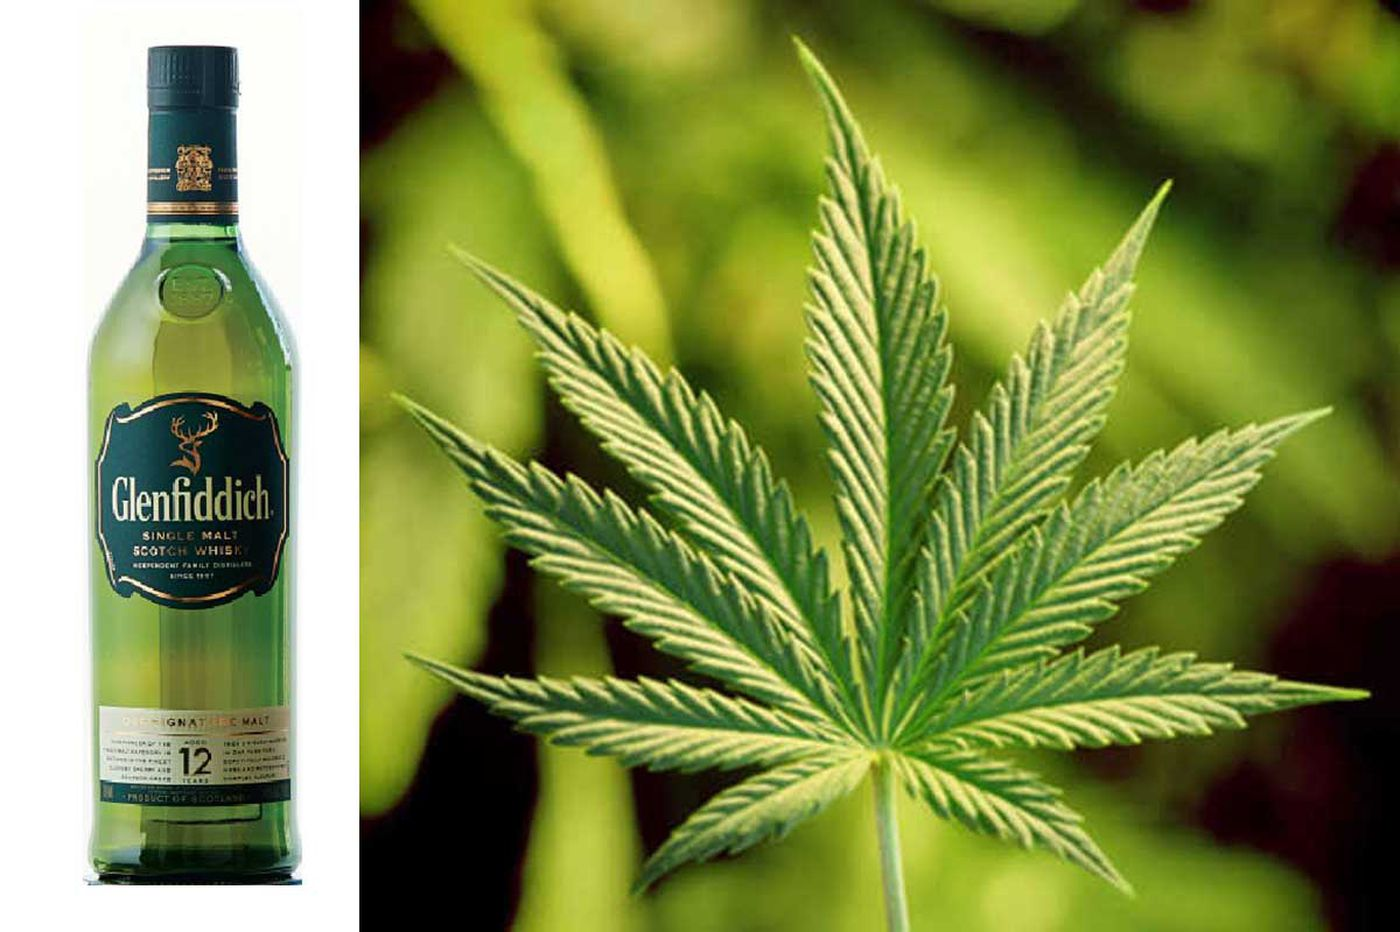 Whisky exec drops single malt for world of weed